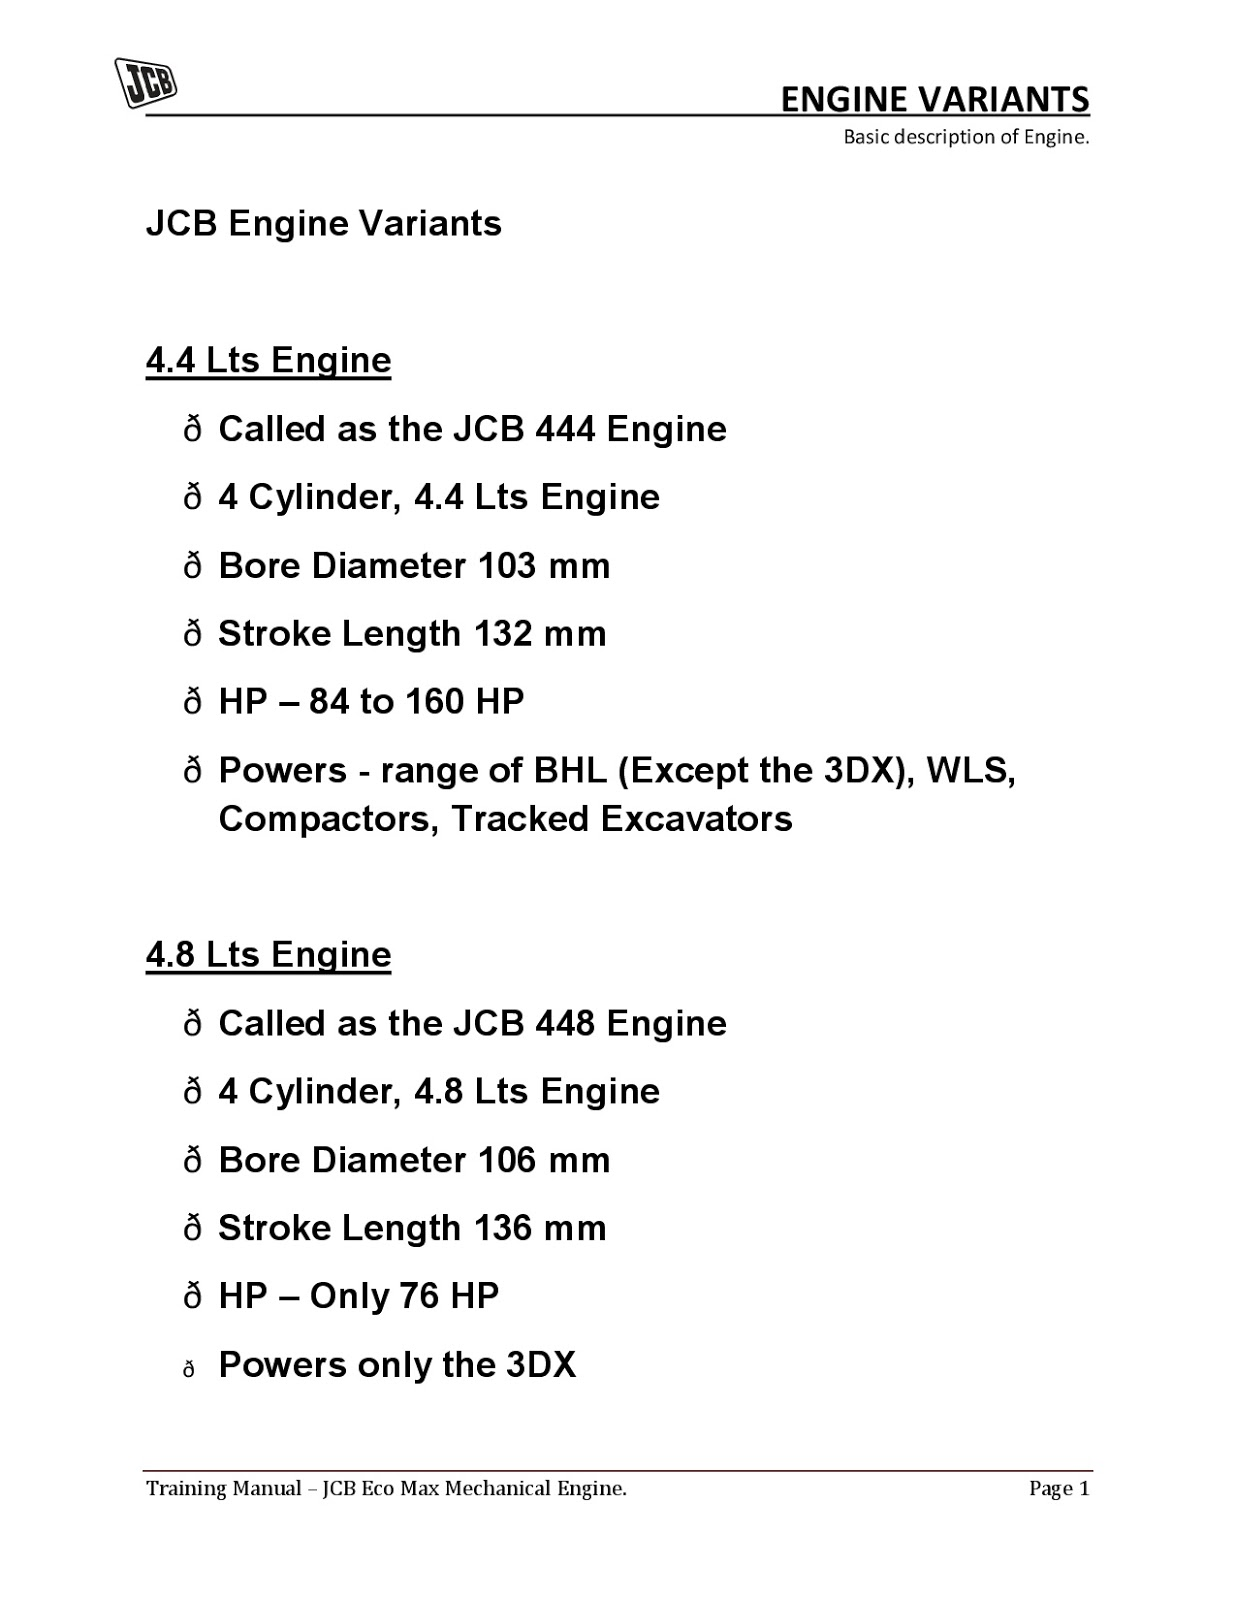 ALLKnowledgeFun: JCB BASIC ENGINE TRAINING MANUAL 1